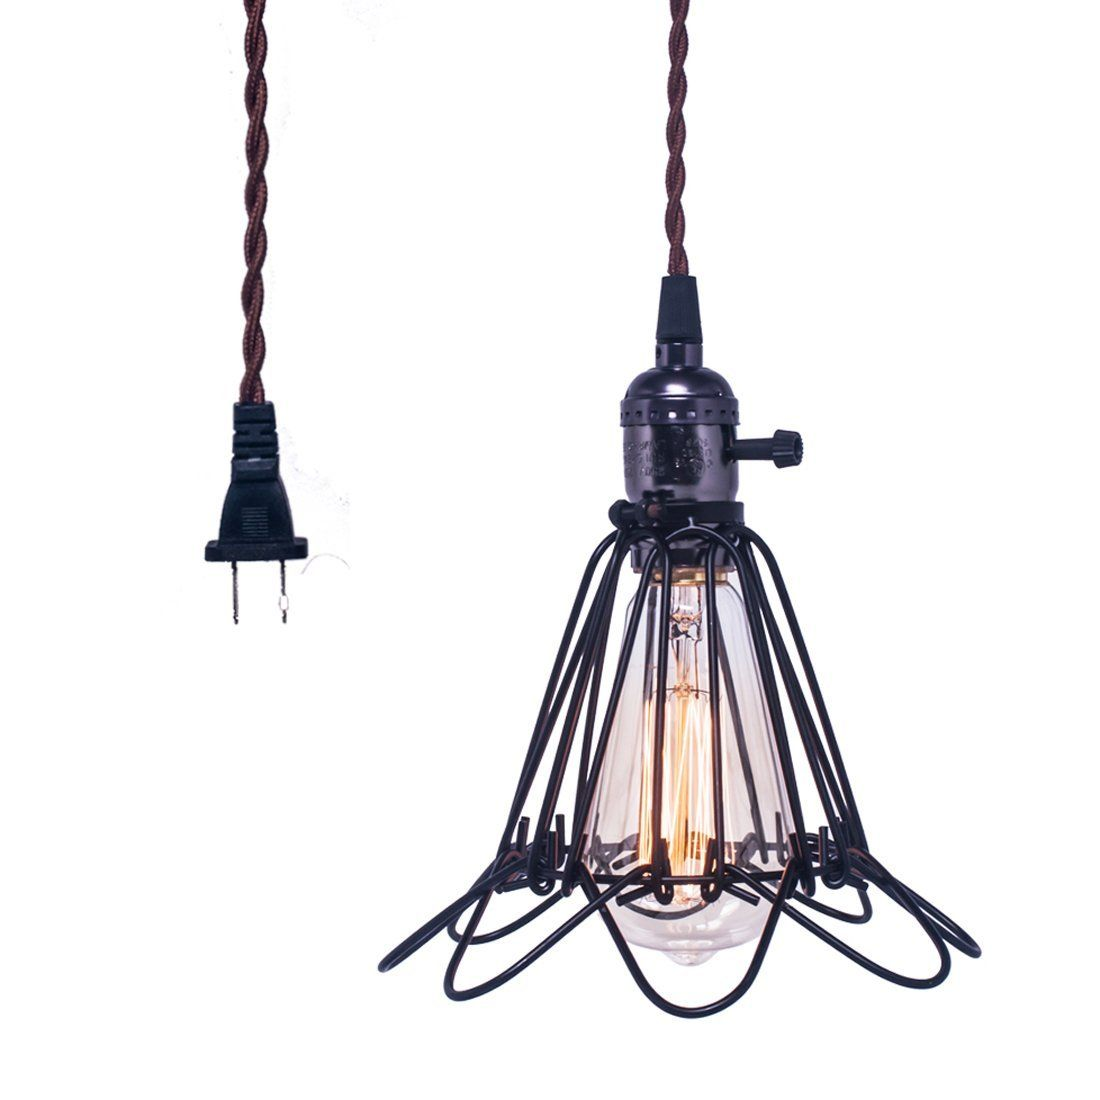 Hebolen Vintage Metal Pendant Light Fixture Industrial Rustic Hanging Ceiling Light With Plug In Pendant Light Metal Pendant Light Fixture Cage Pendant Light